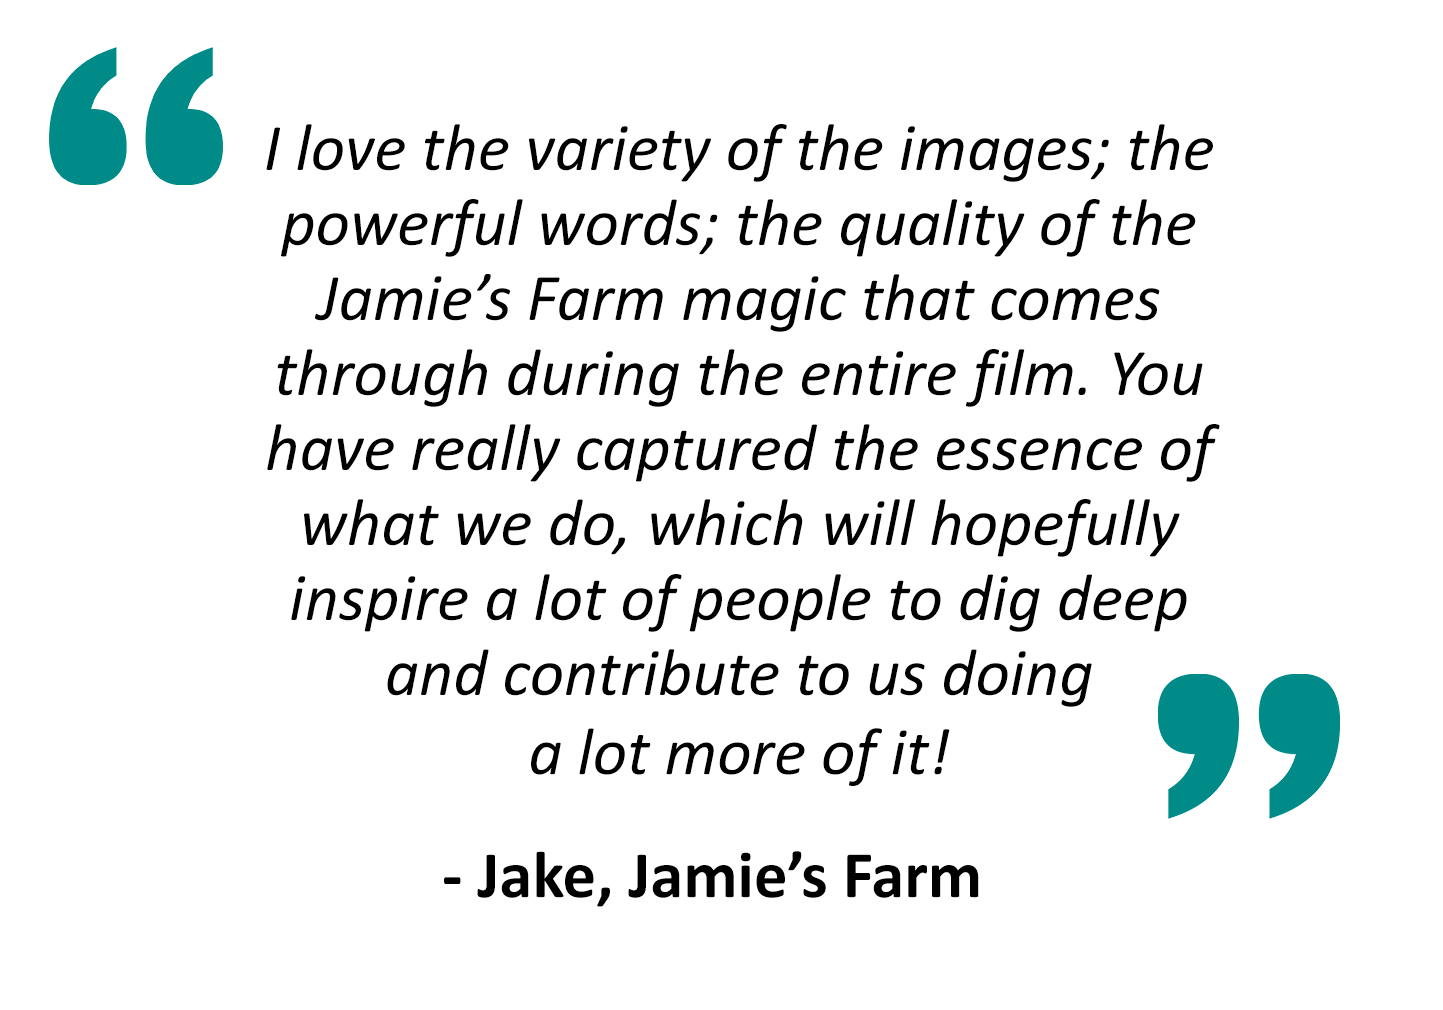 Jamie's Farm quote.png